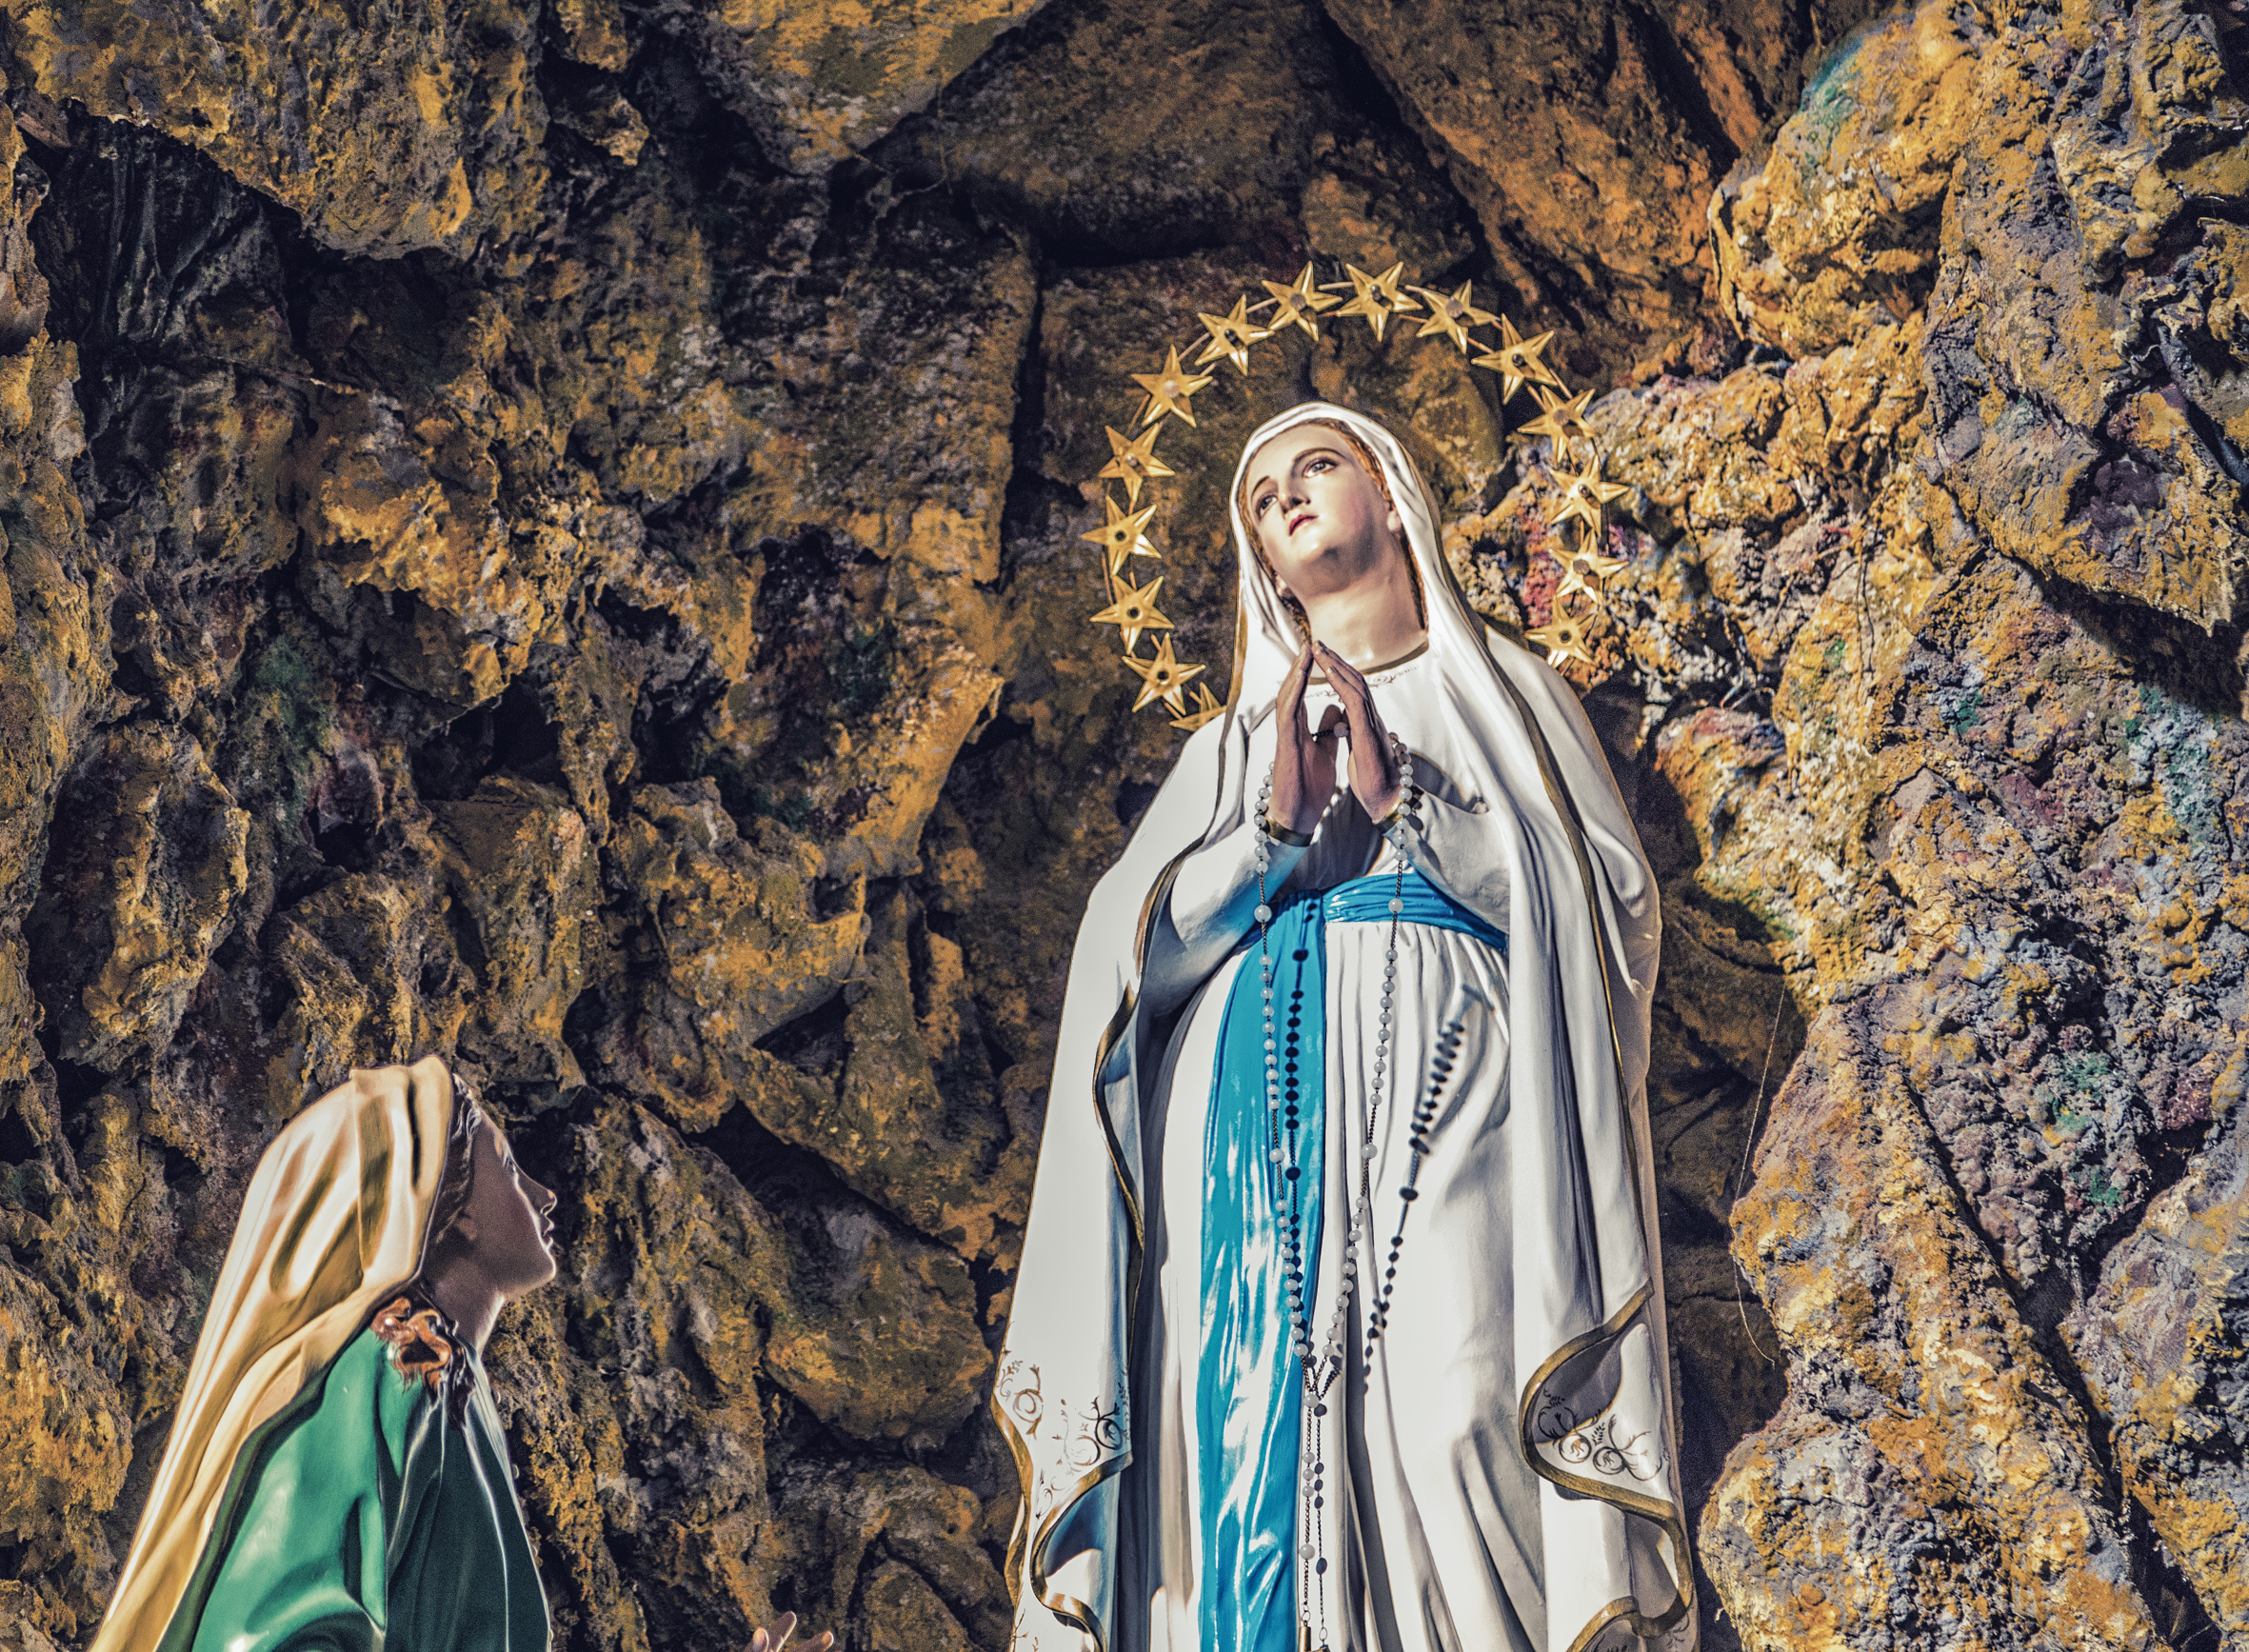 Feb. 11 - Our Lady of Lourdes